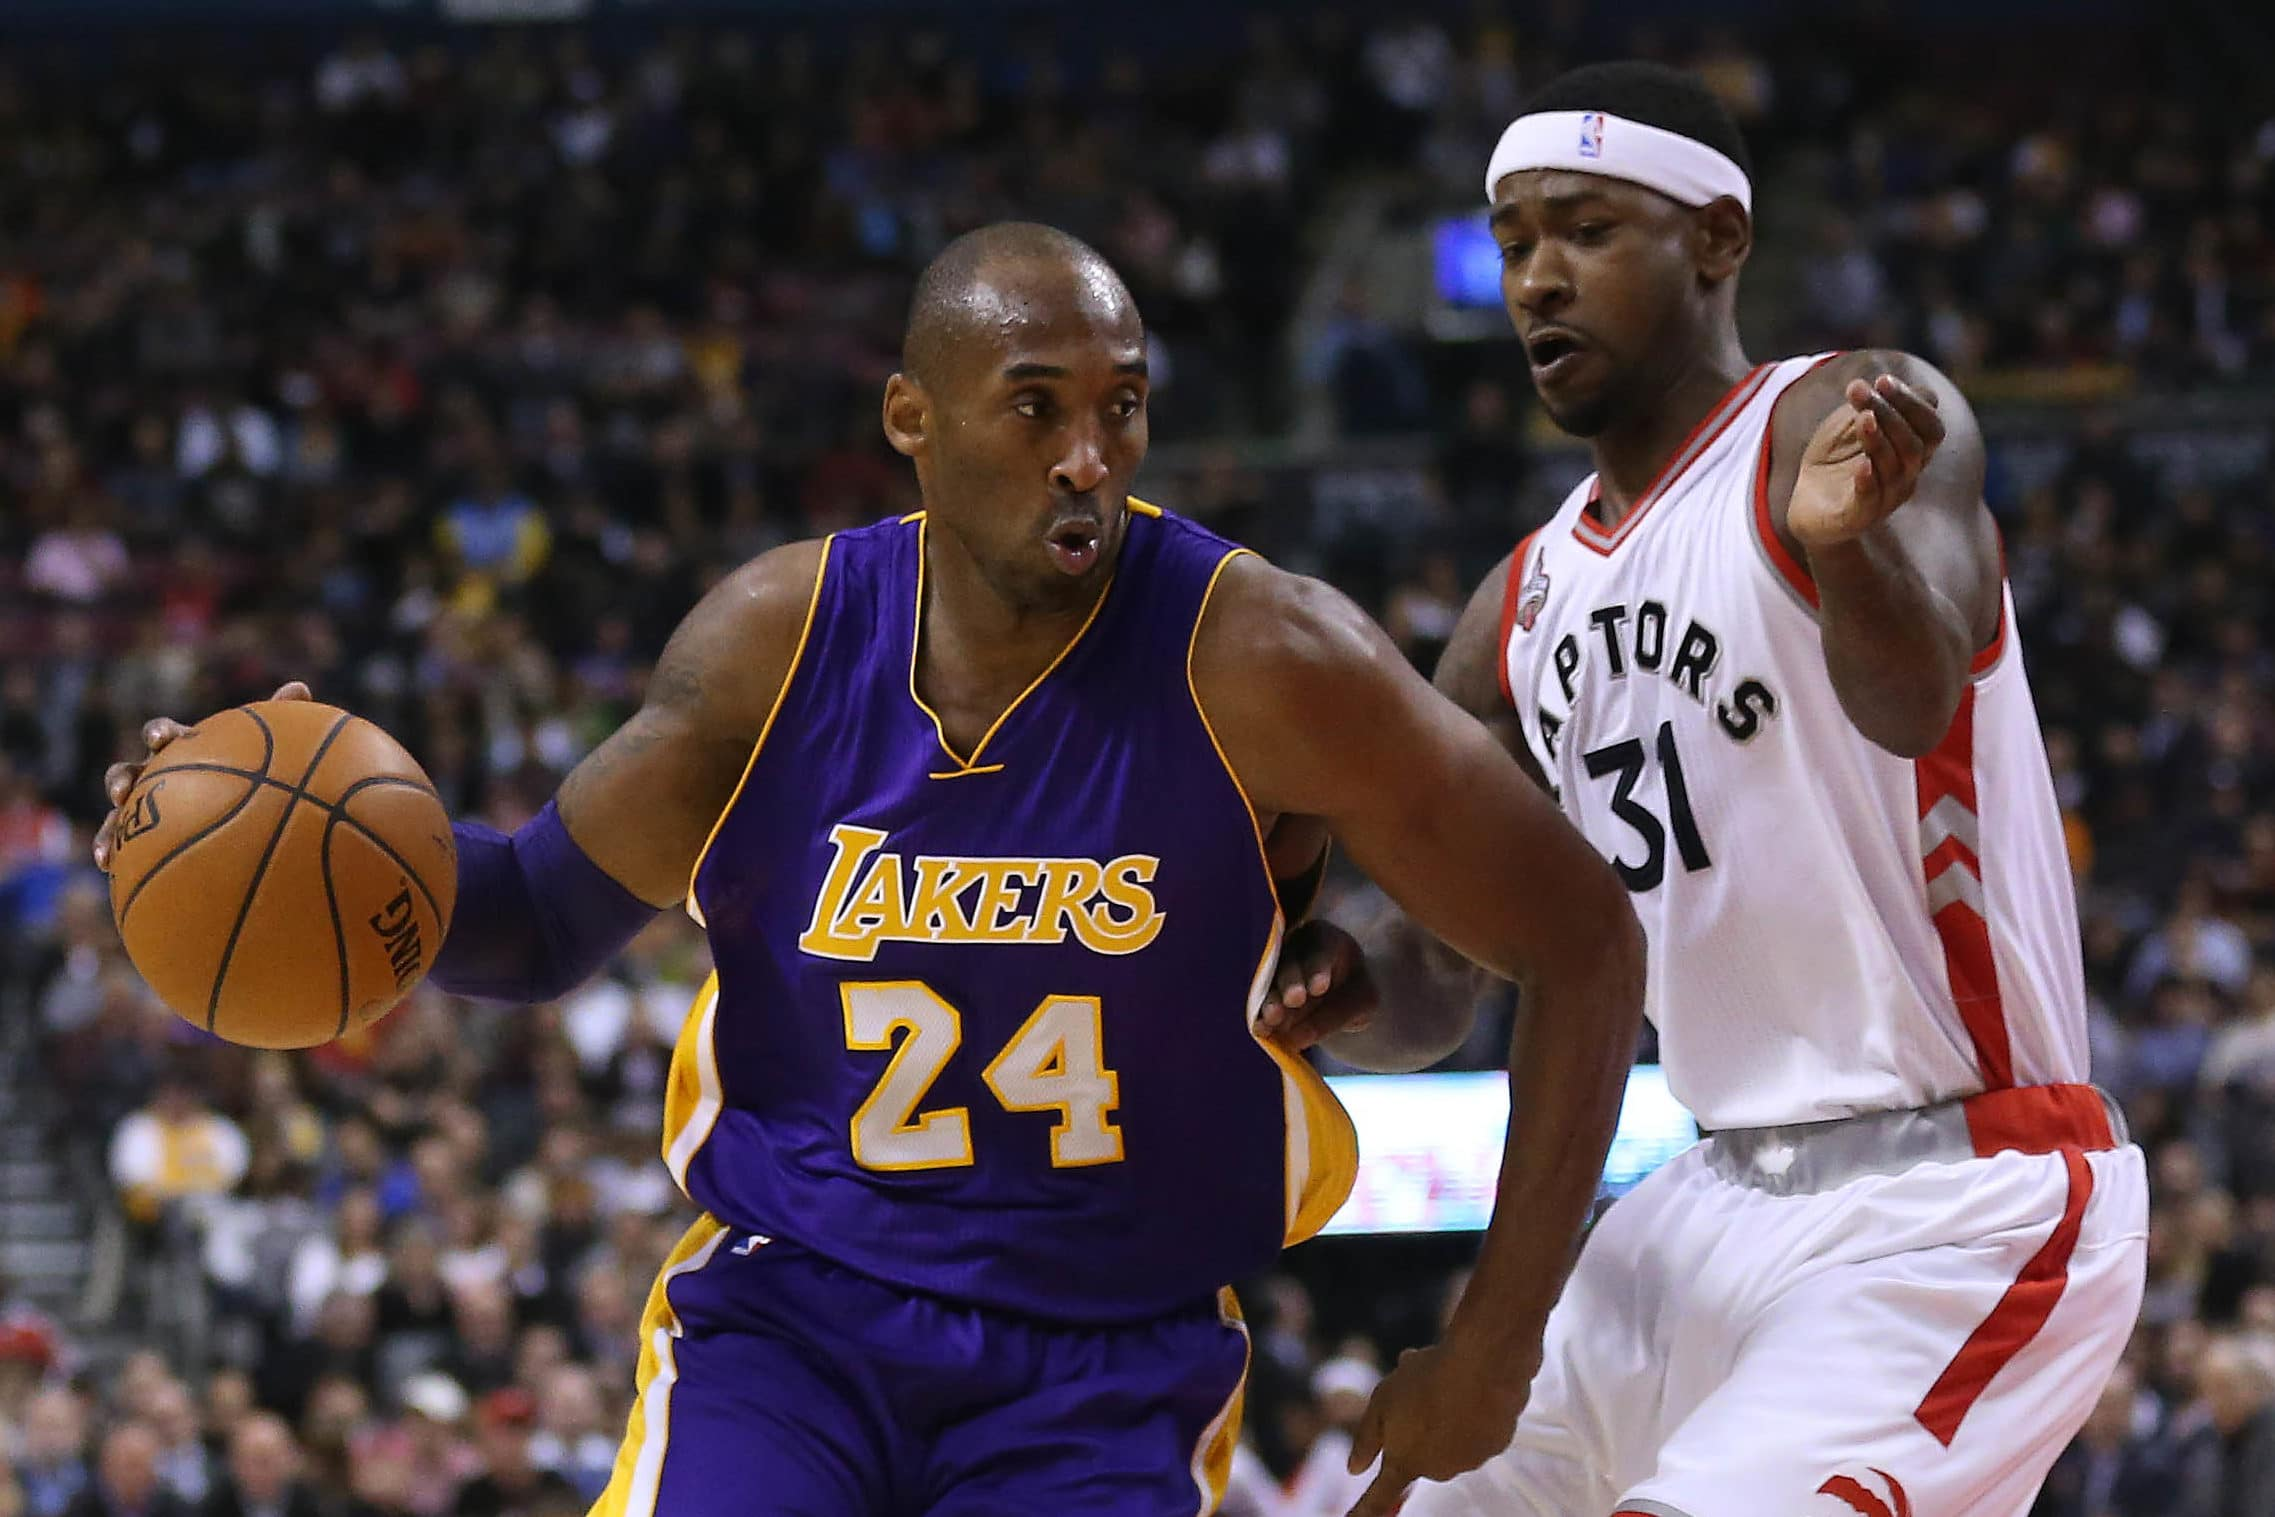 Kobe Bryant and Terrence Ross